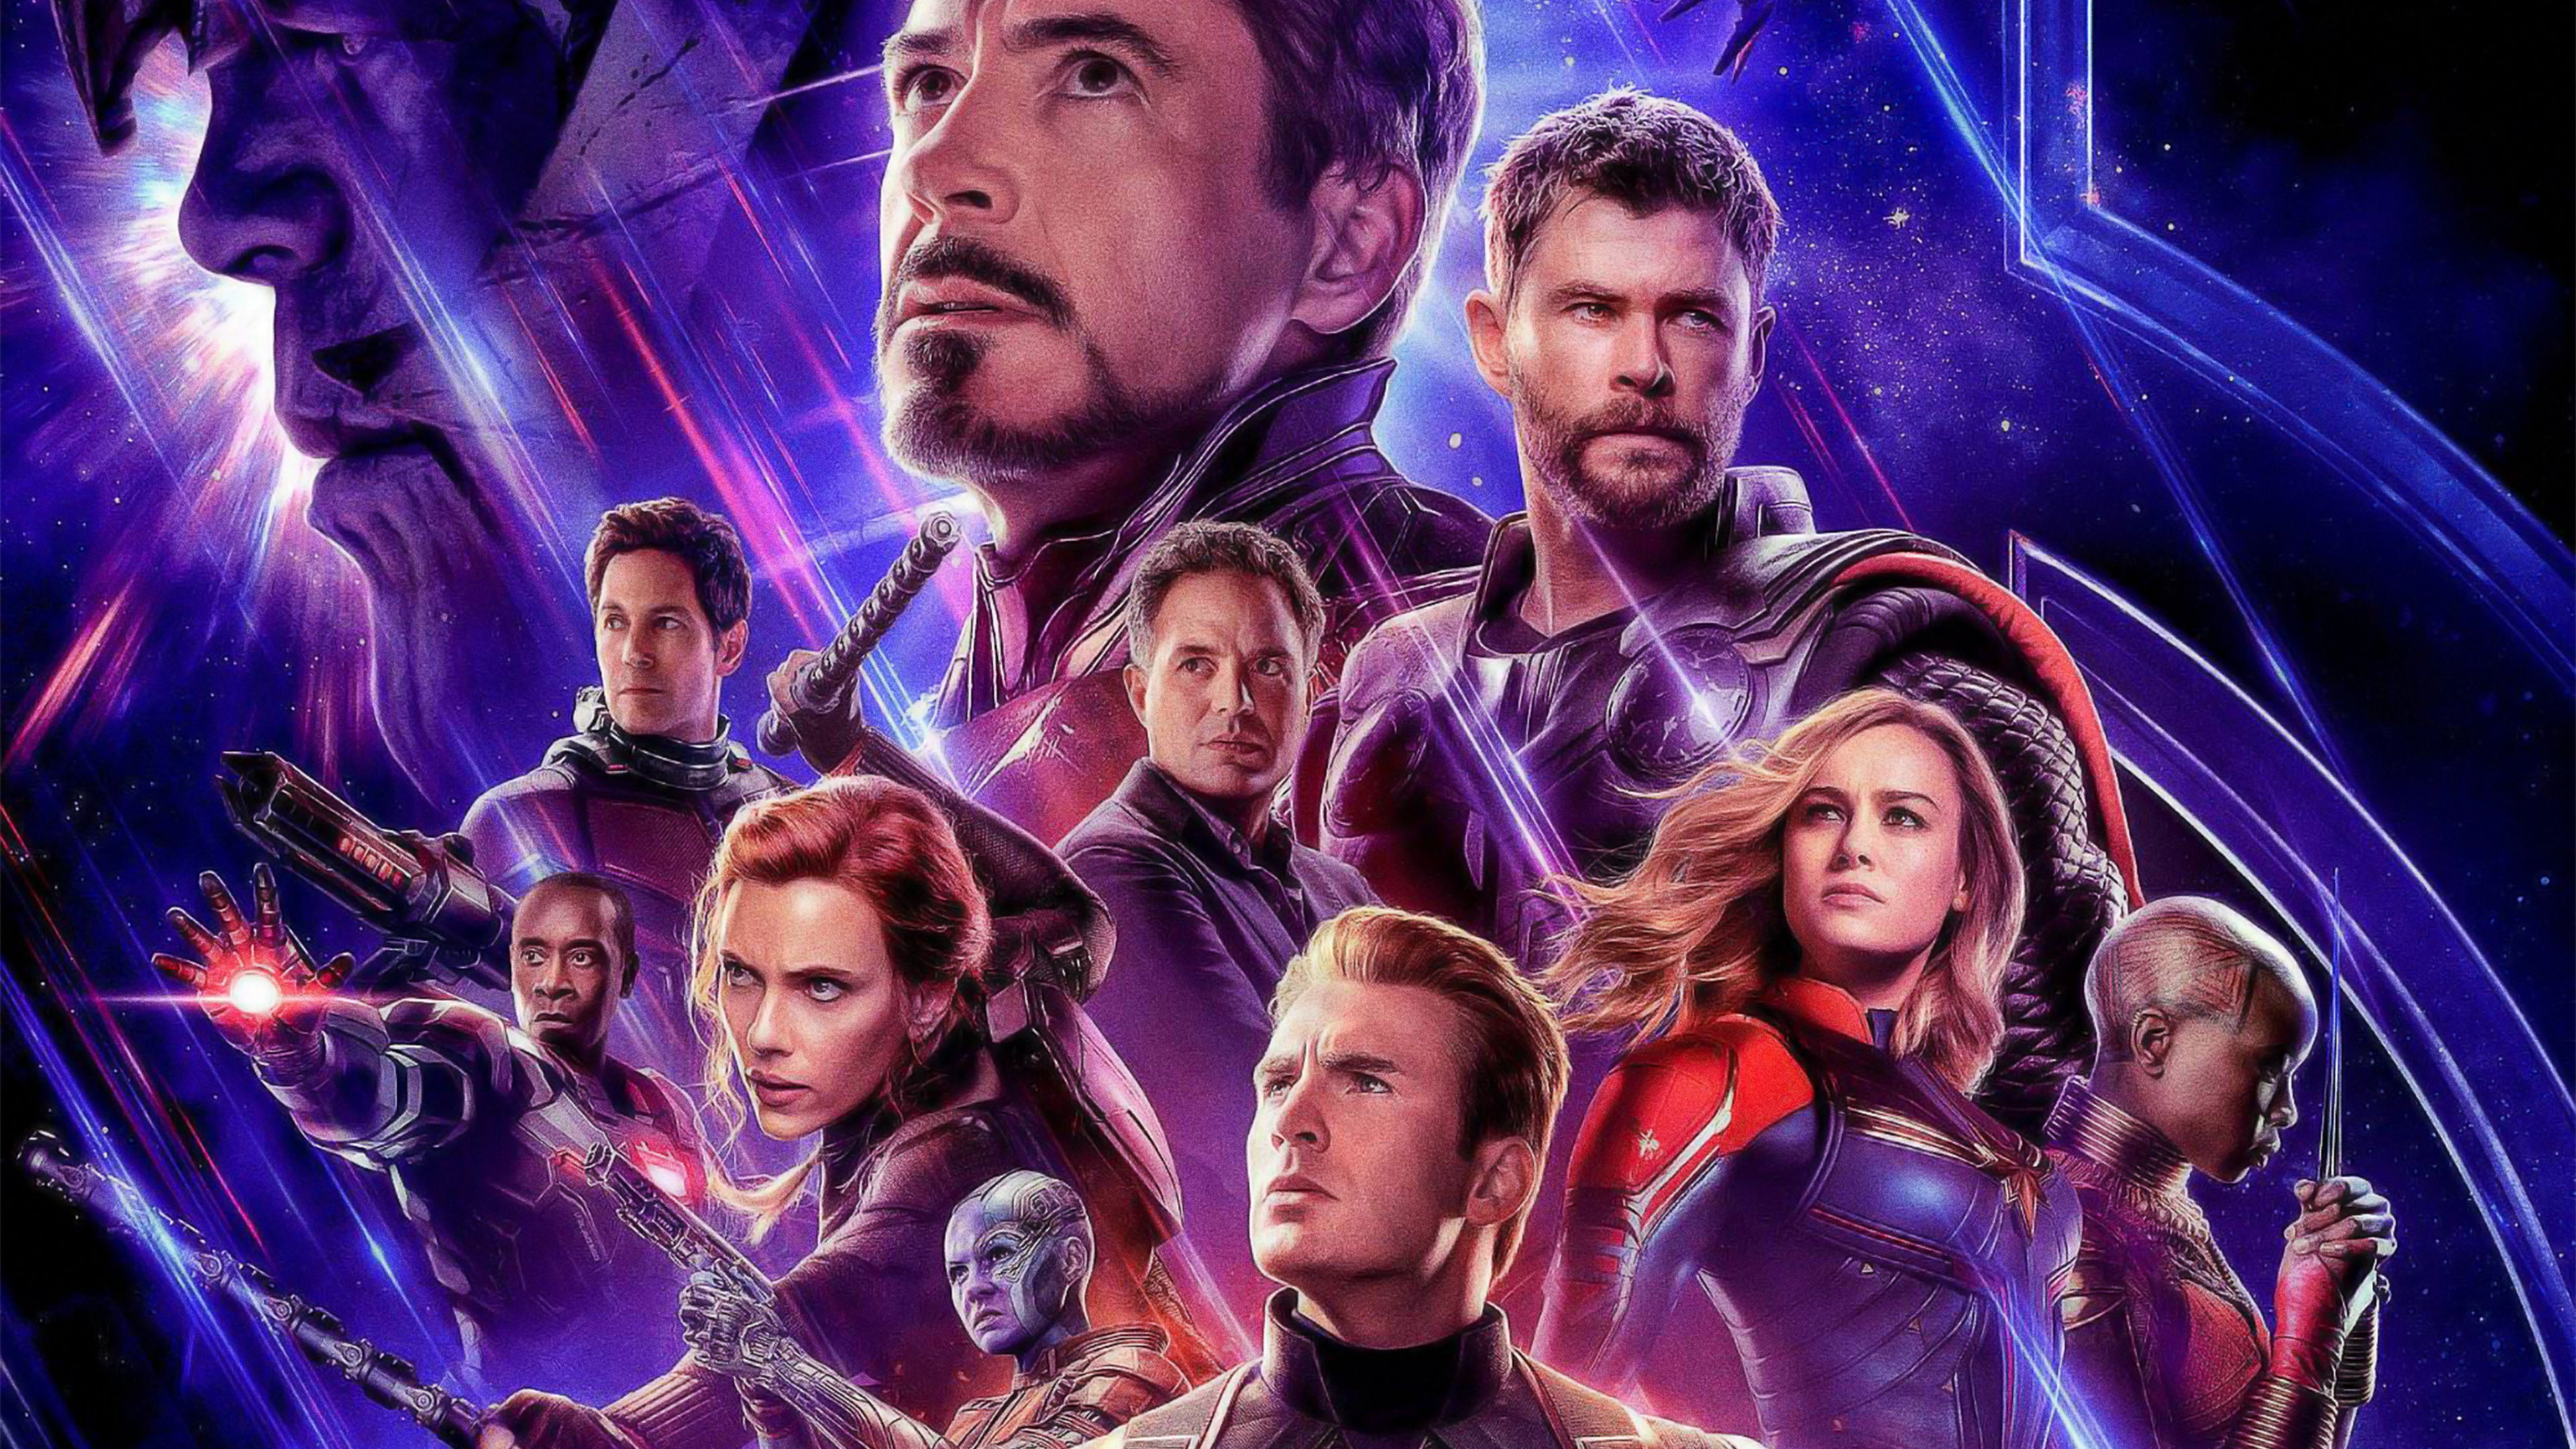 Avengers Endgame Official Poster 4k Avengers Poster Marvel Movie Posters Marvel Superheroes